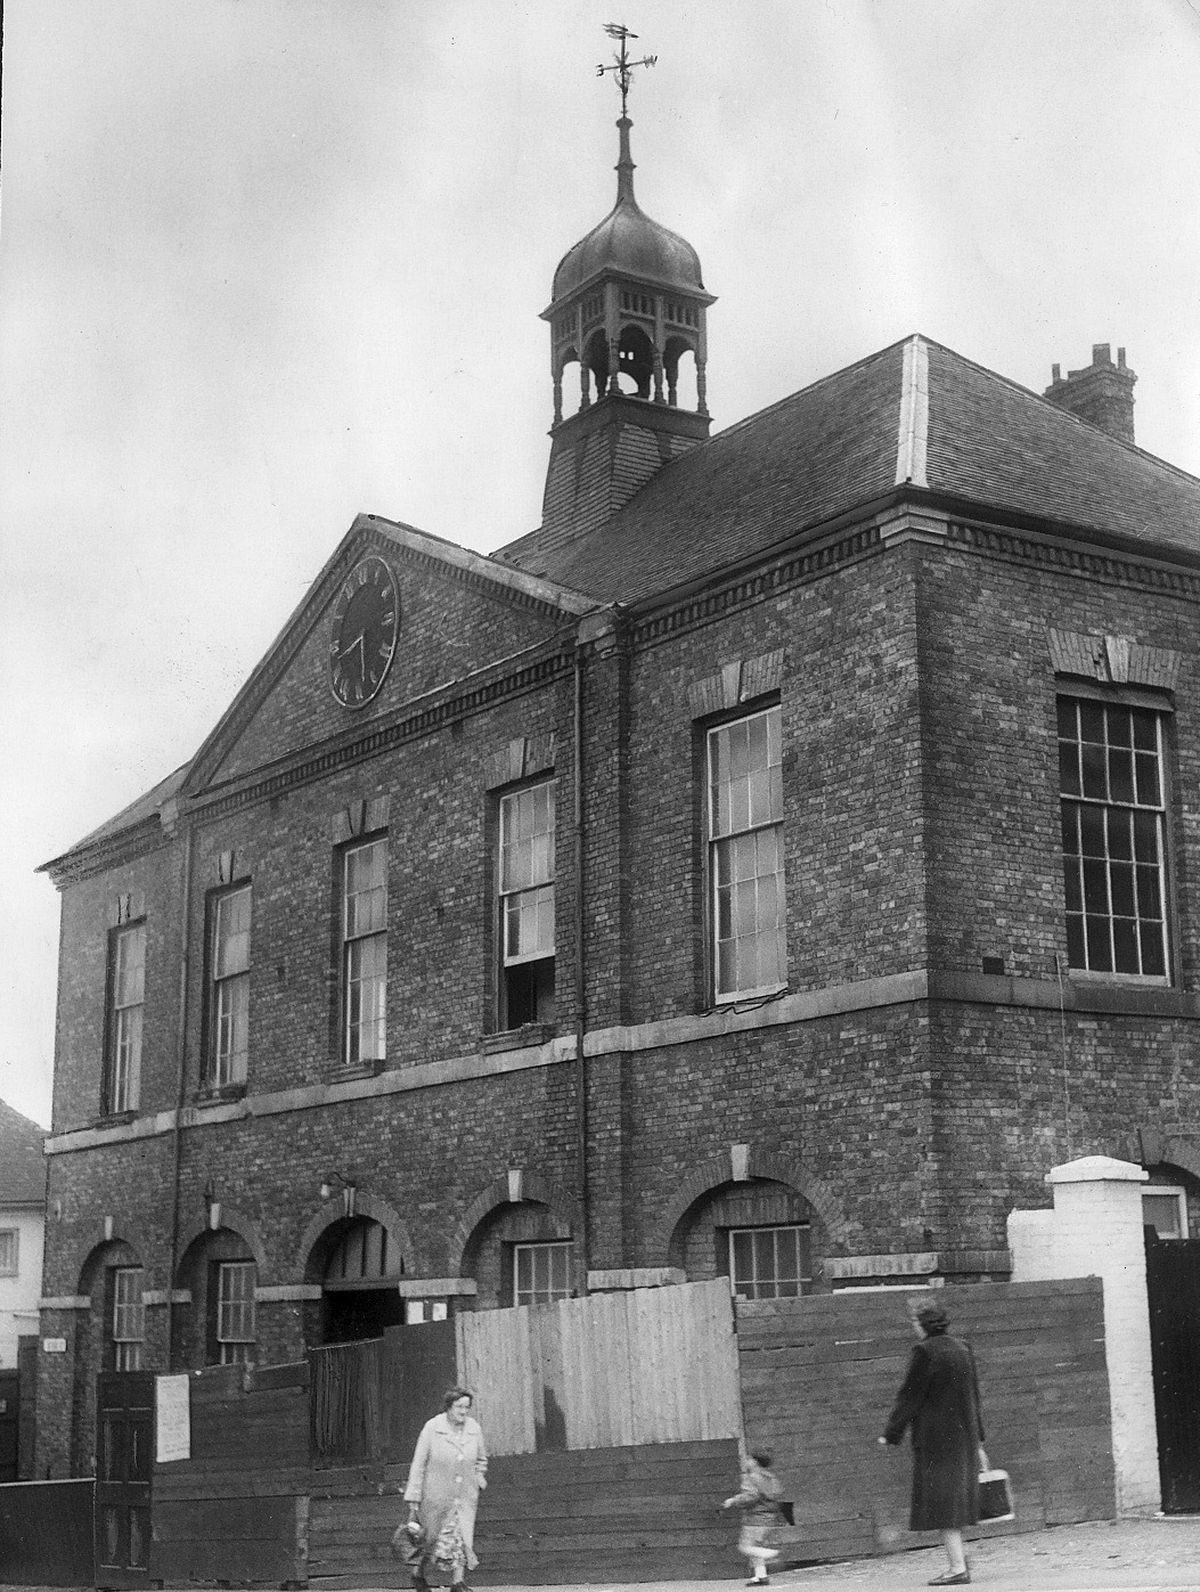 Broseley Town Hall in the early 1960s.